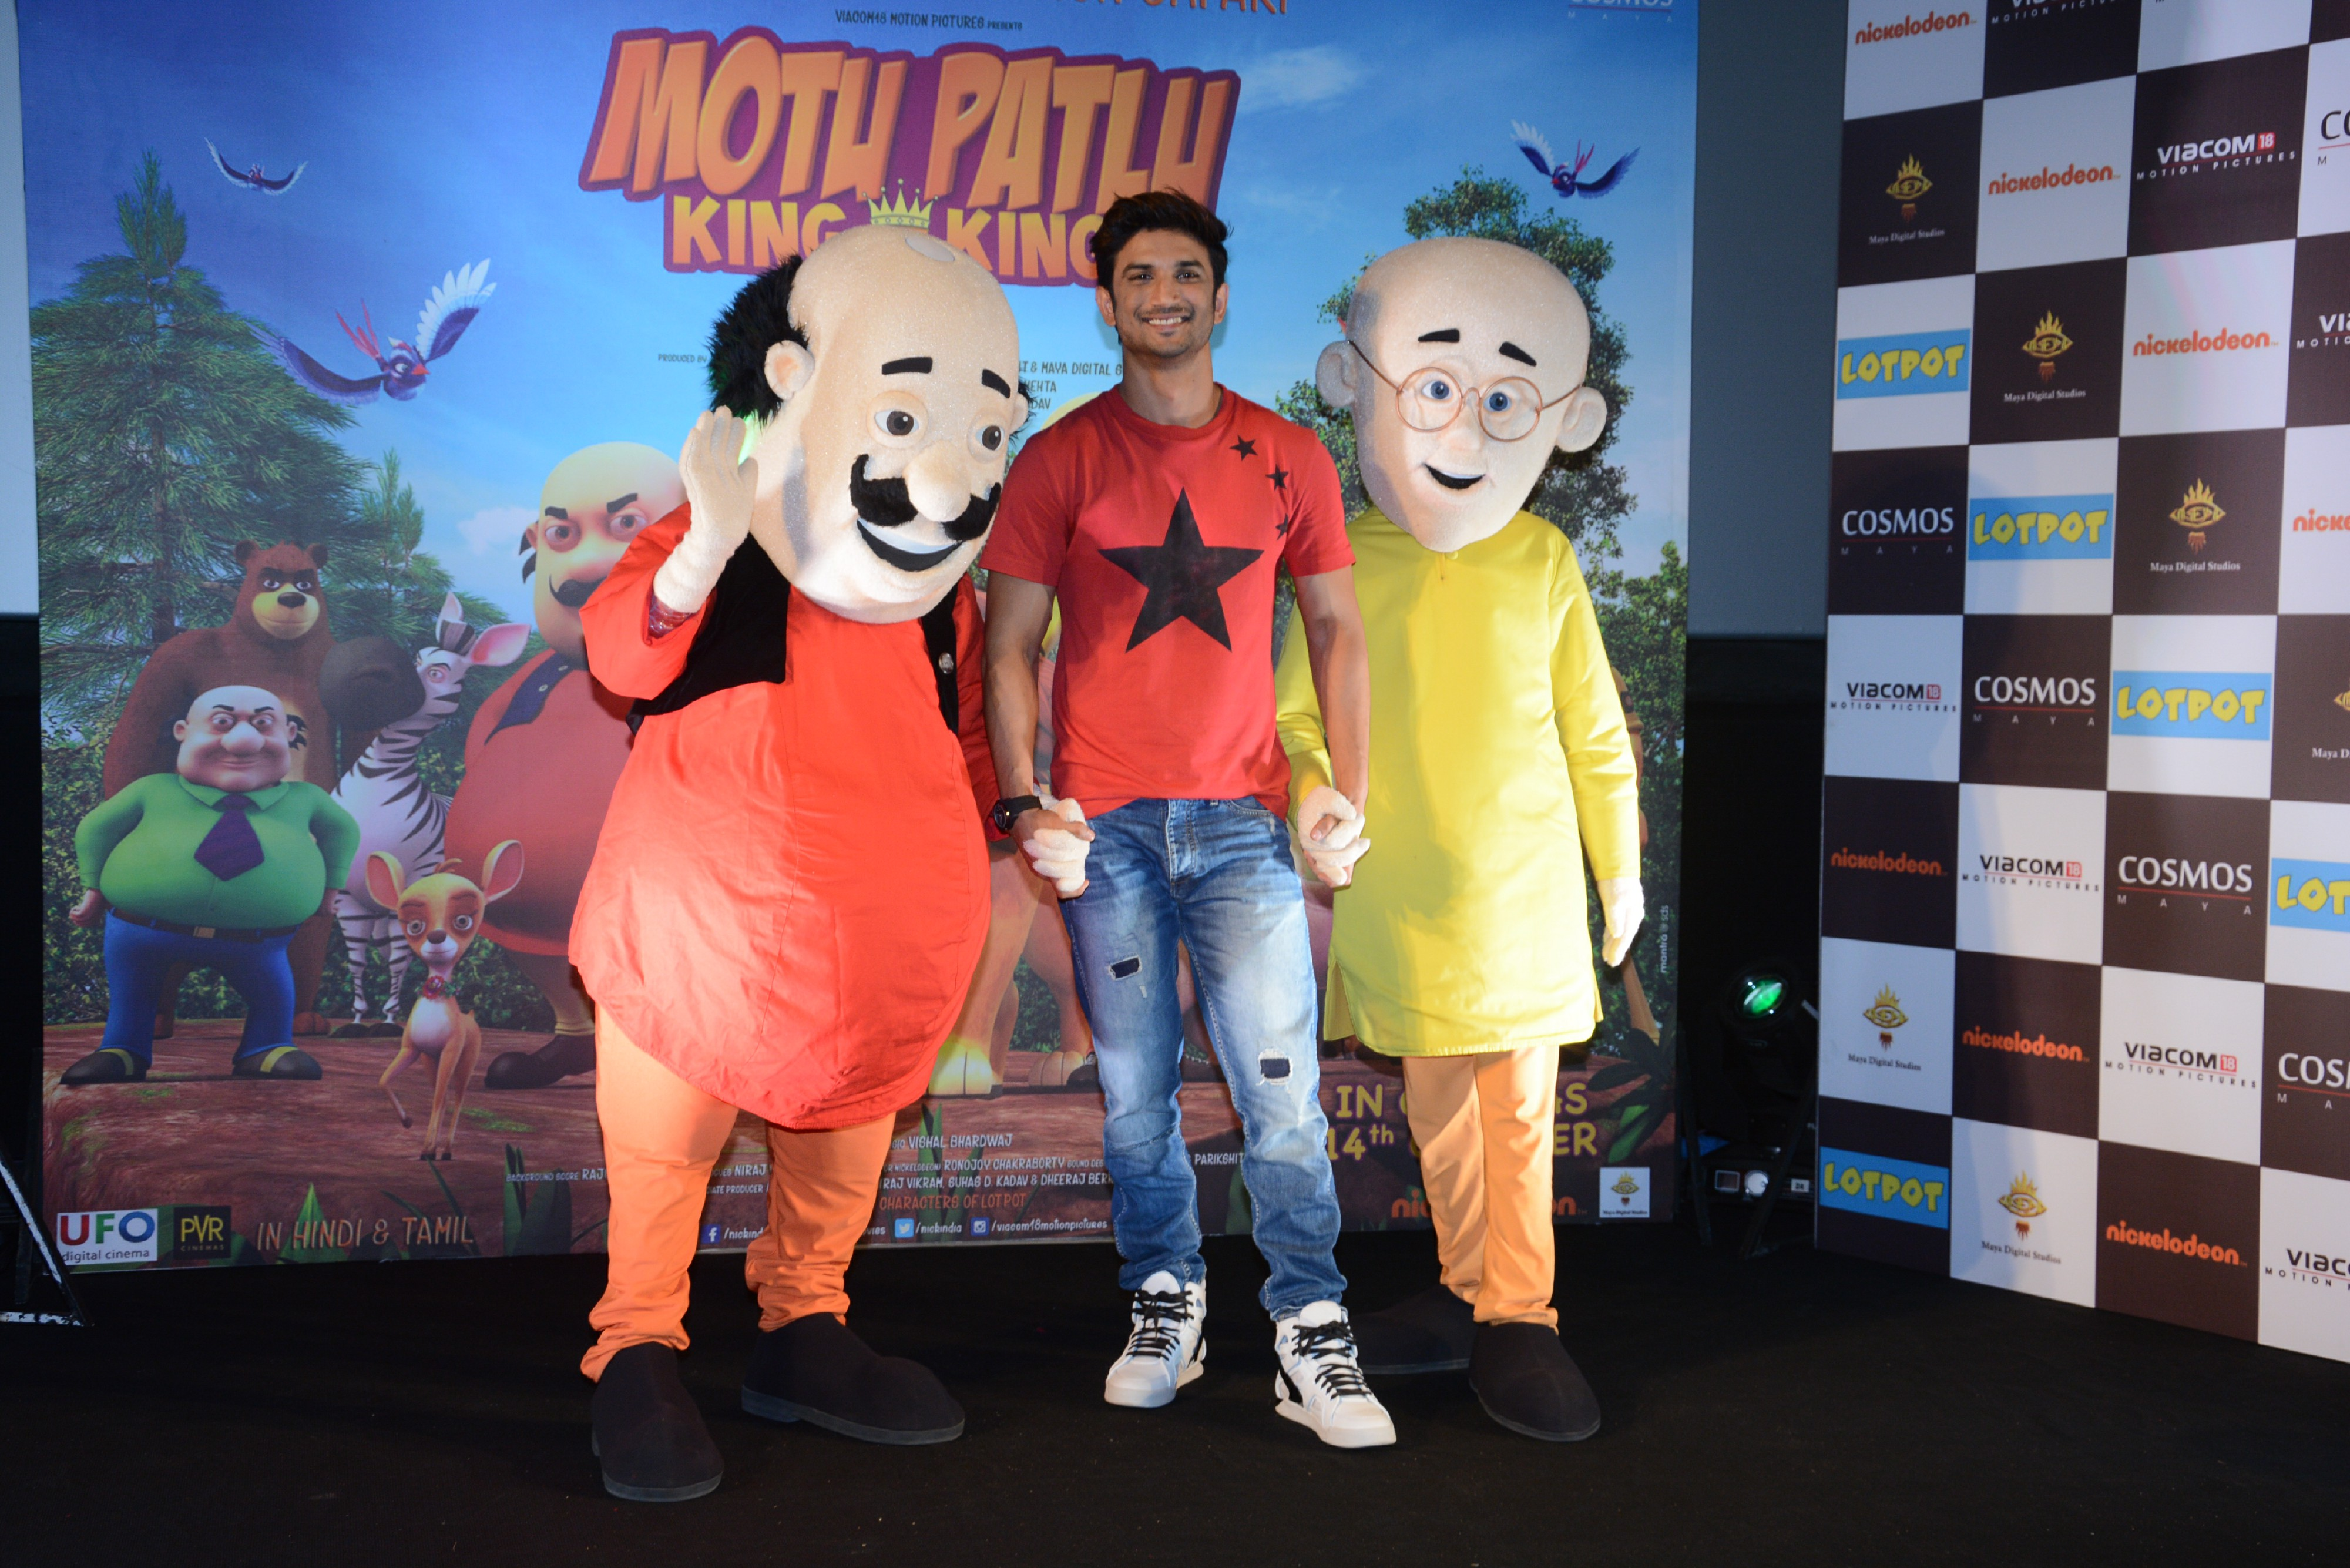 motu-sushant-singh-rajput-patlu-on-the-trailer-launch-of-motu-patlu-king-of-kings